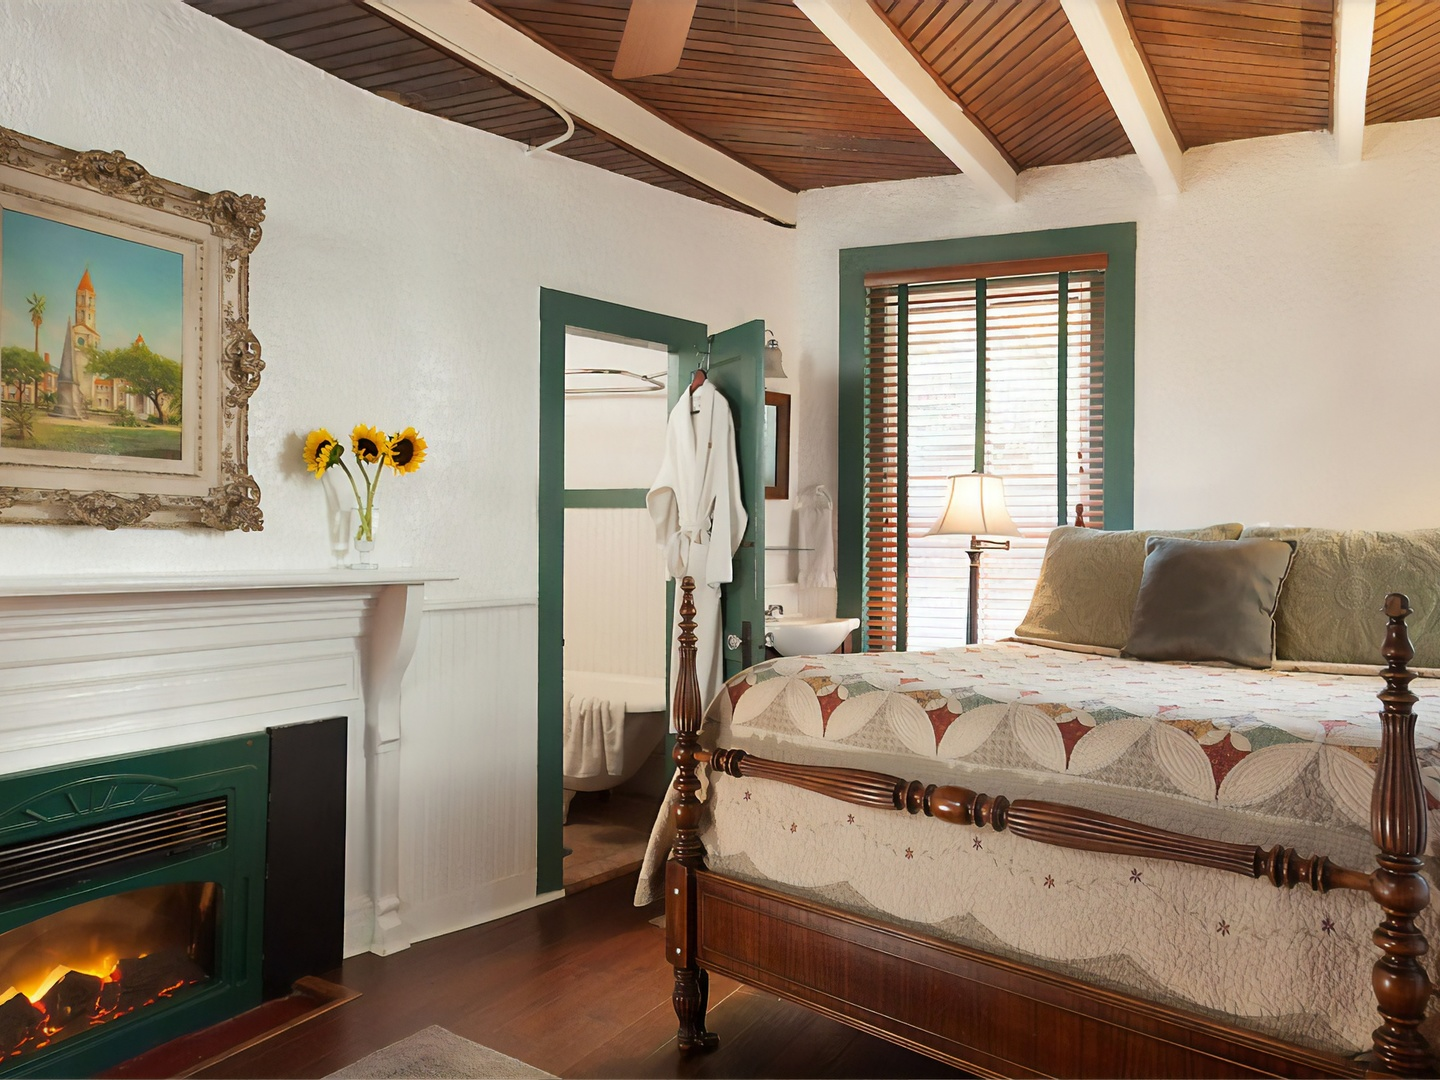 A bedroom with a bed and a fireplace at St. Francis Inn.